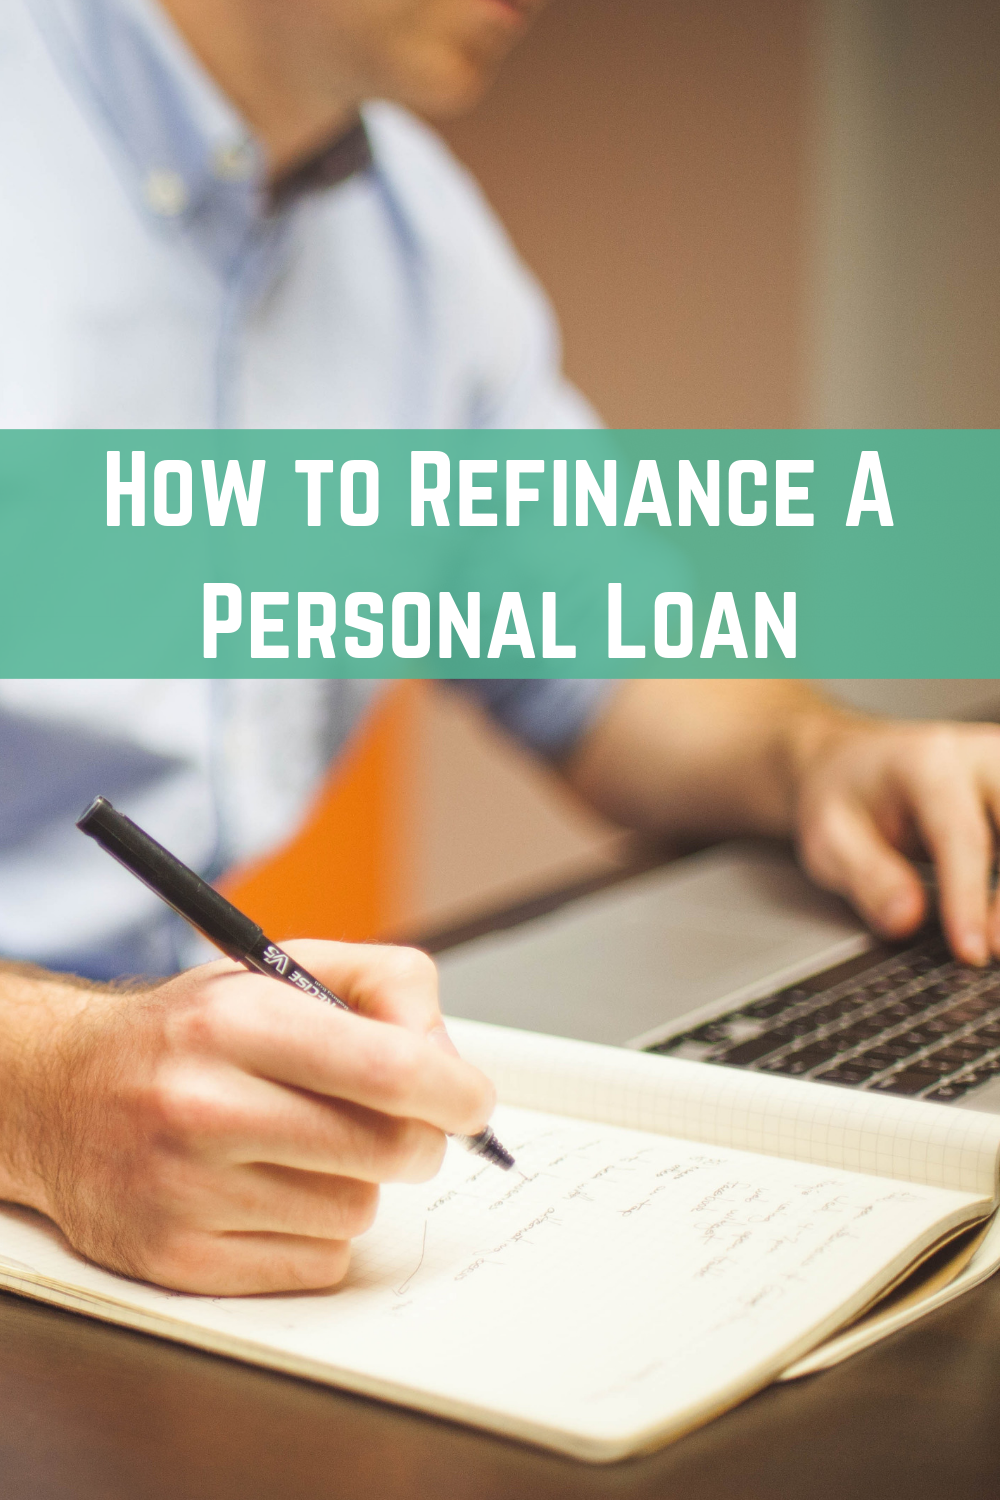 Learn How To Refinance A Personal Loan In 5 Easy Steps From This Helpful Article By Autogists Personal Loans Dorm Diy Person